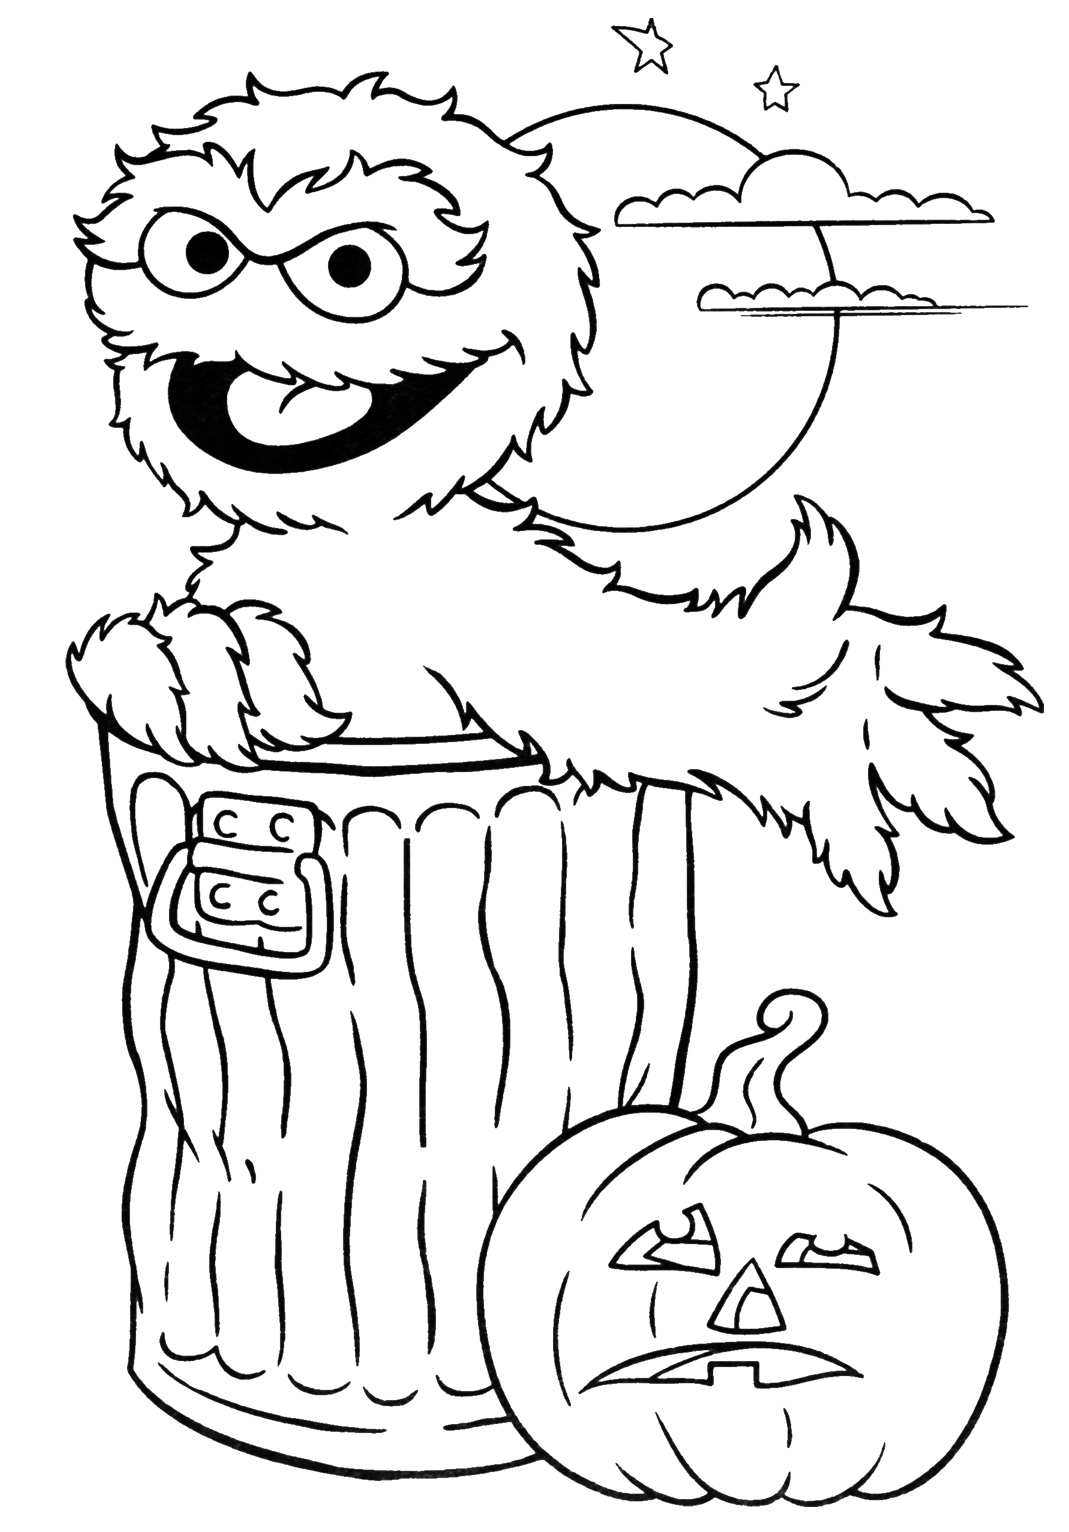 animated coloring pages Kaysmakehaukco